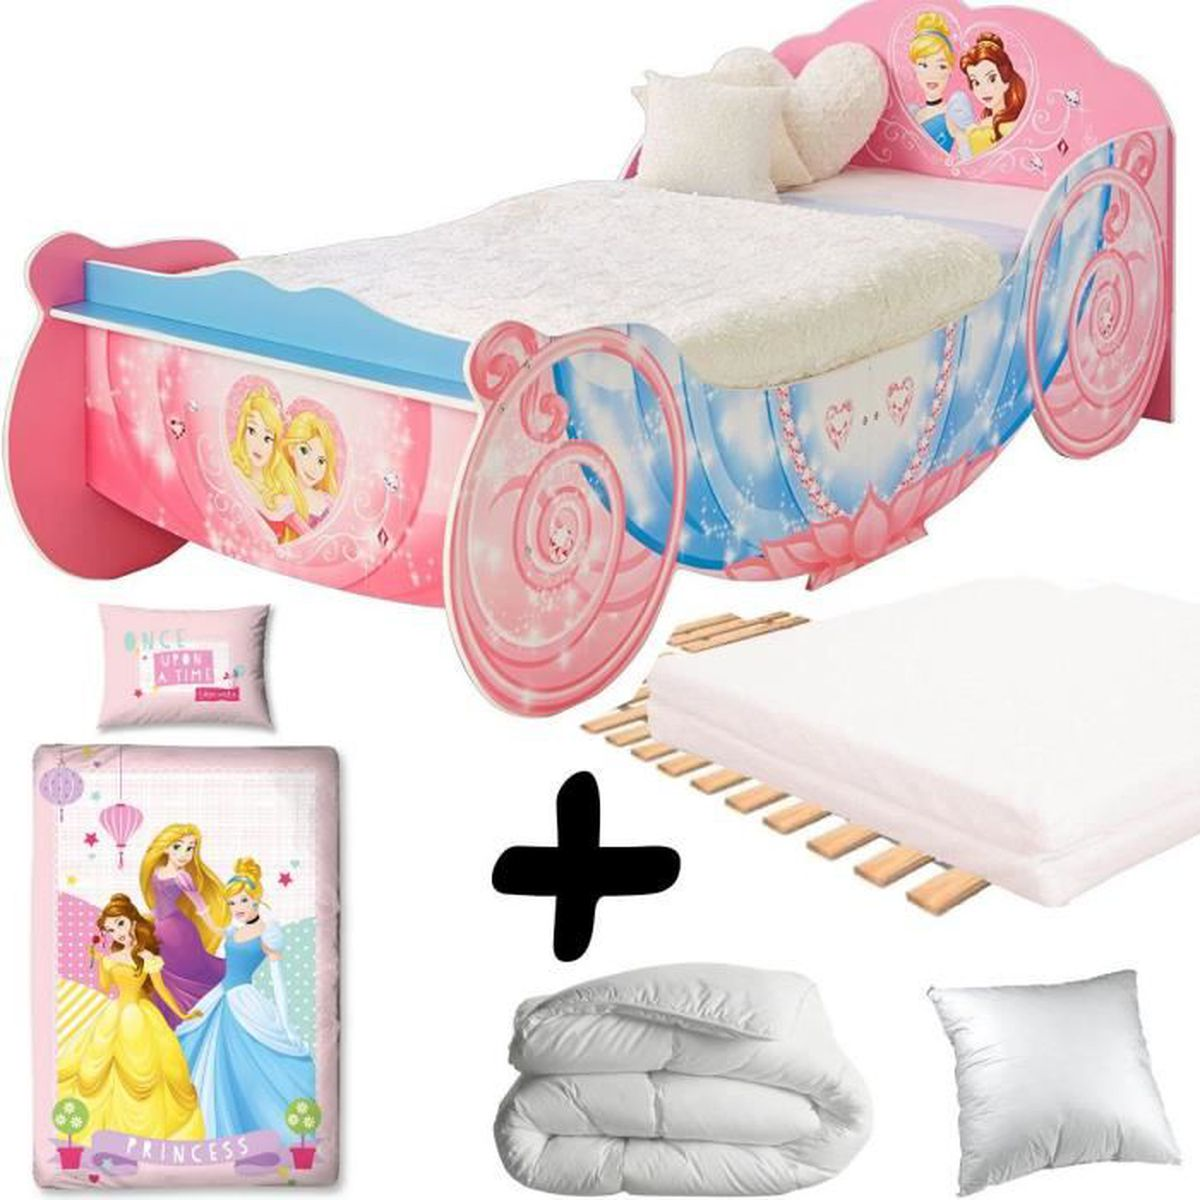 lit baldaquin princesse disney great disney princesse ciel de lit princesses with lit baldaquin. Black Bedroom Furniture Sets. Home Design Ideas